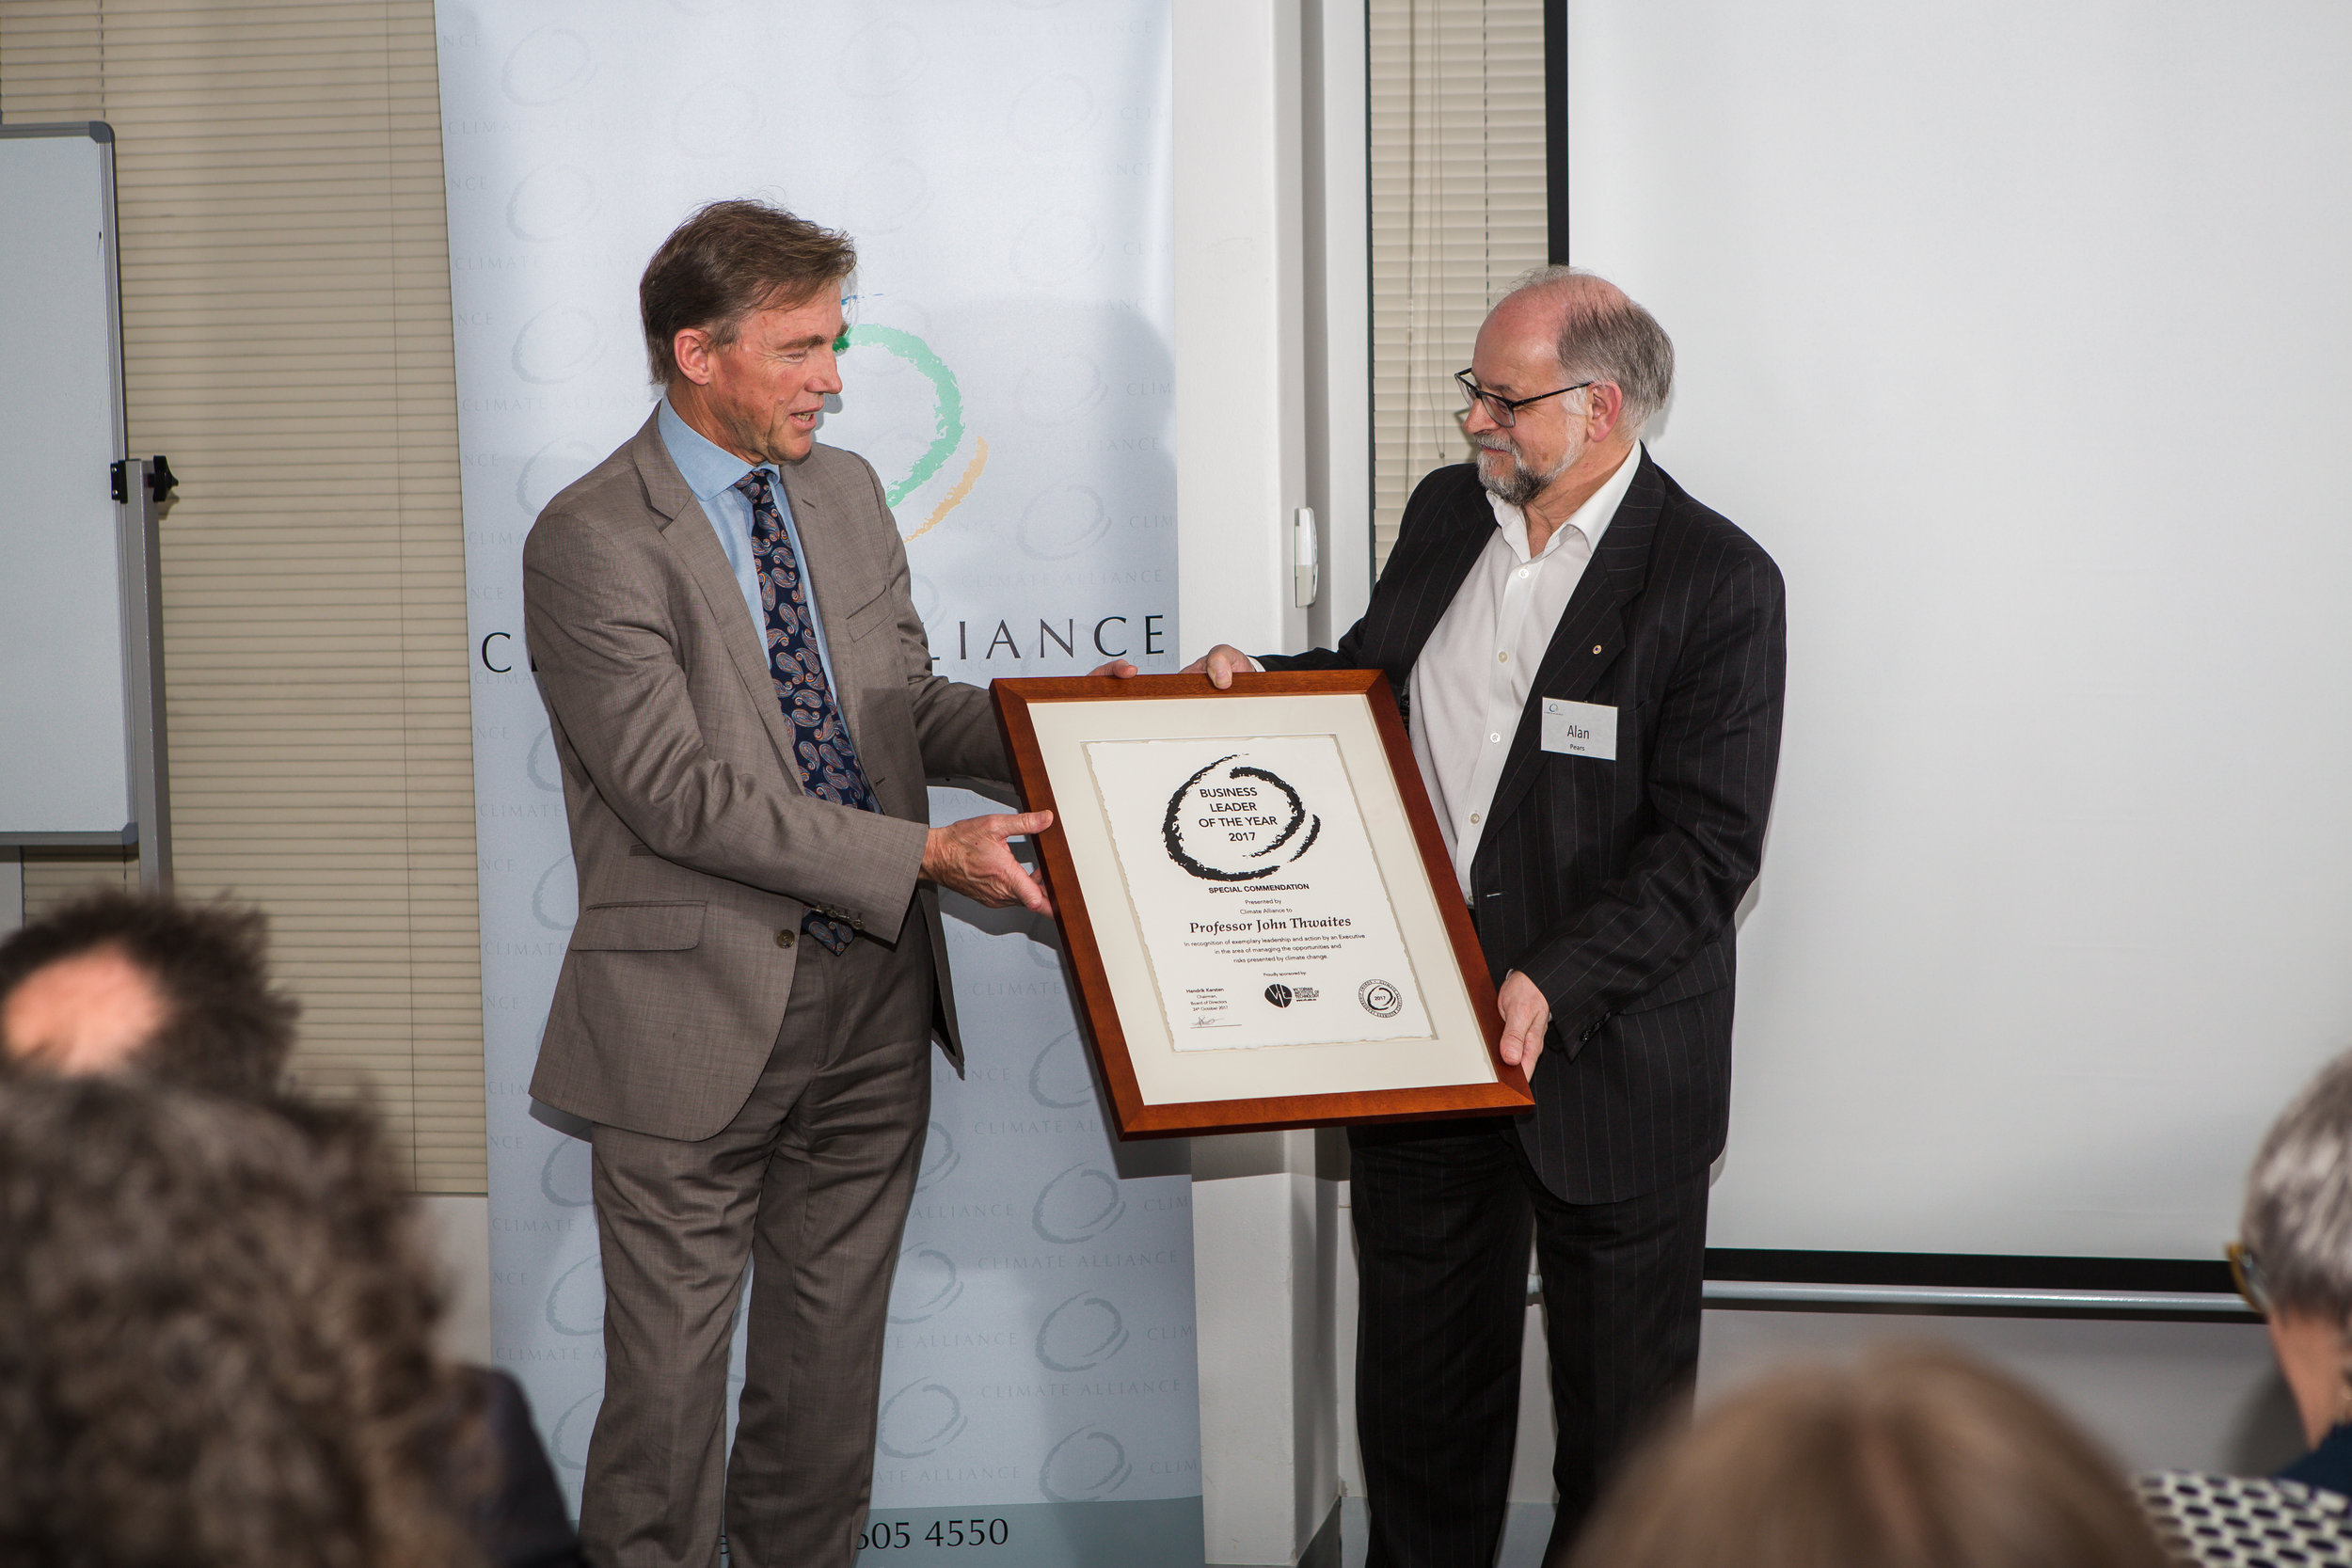 Special Commendation, Business Leader of the Year 2017 - Professor John Thwaites with Alan Pears, Member of the Climate Alliance Board of Advisors.